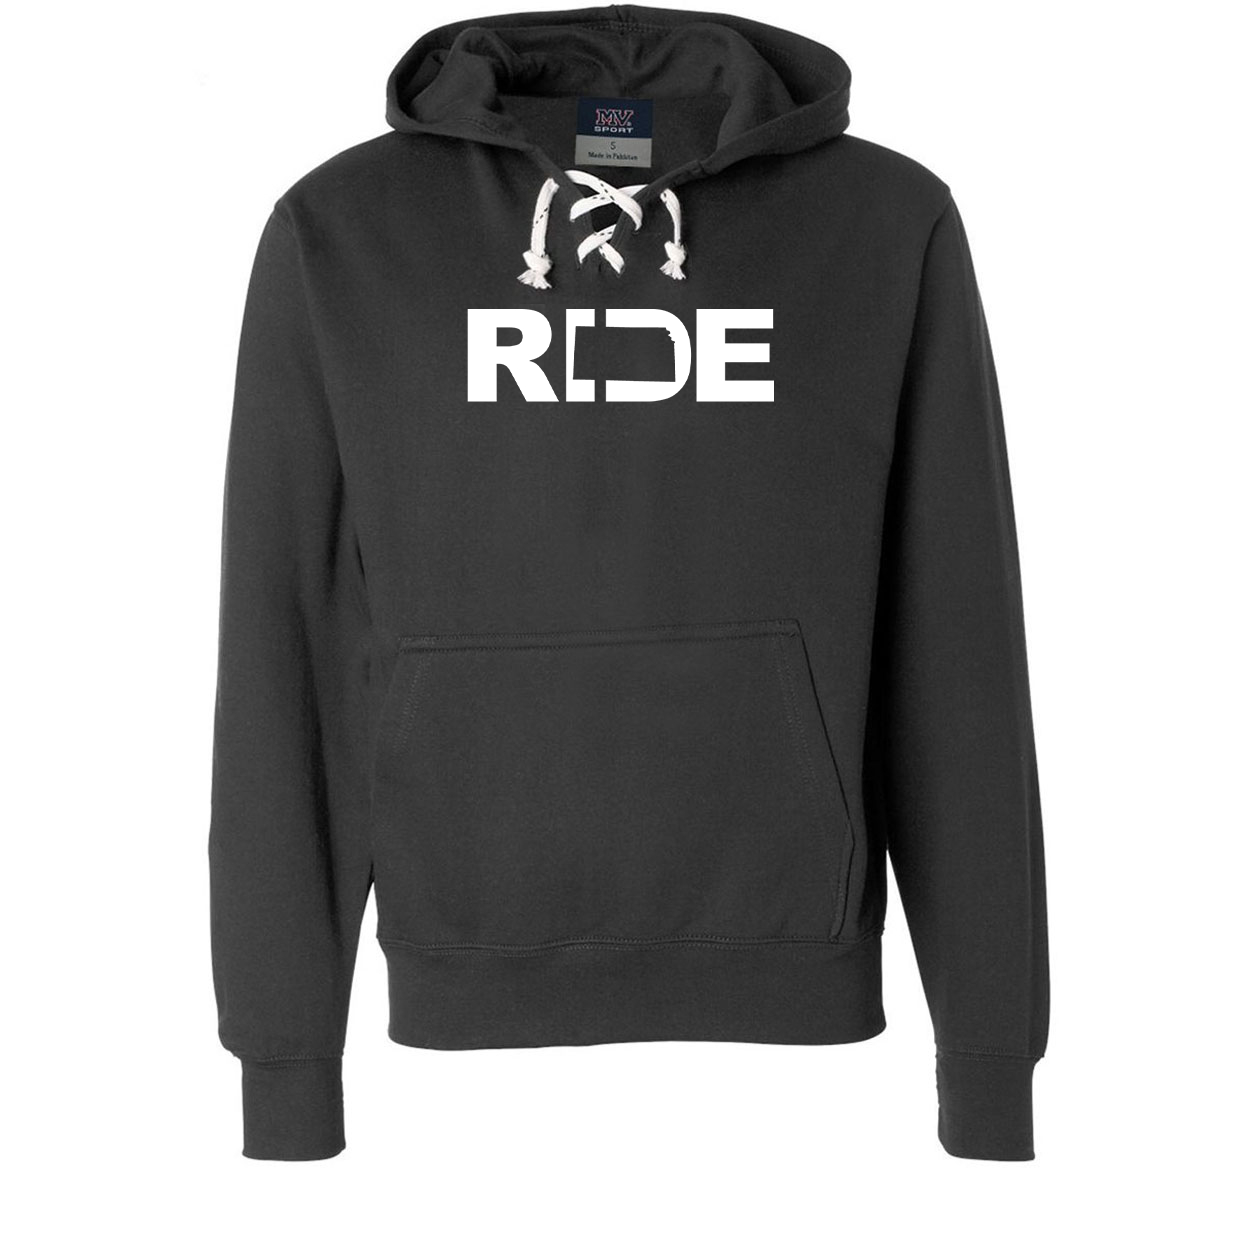 Ride Kansas Classic Unisex Premium Hockey Sweatshirt Black (White Logo)